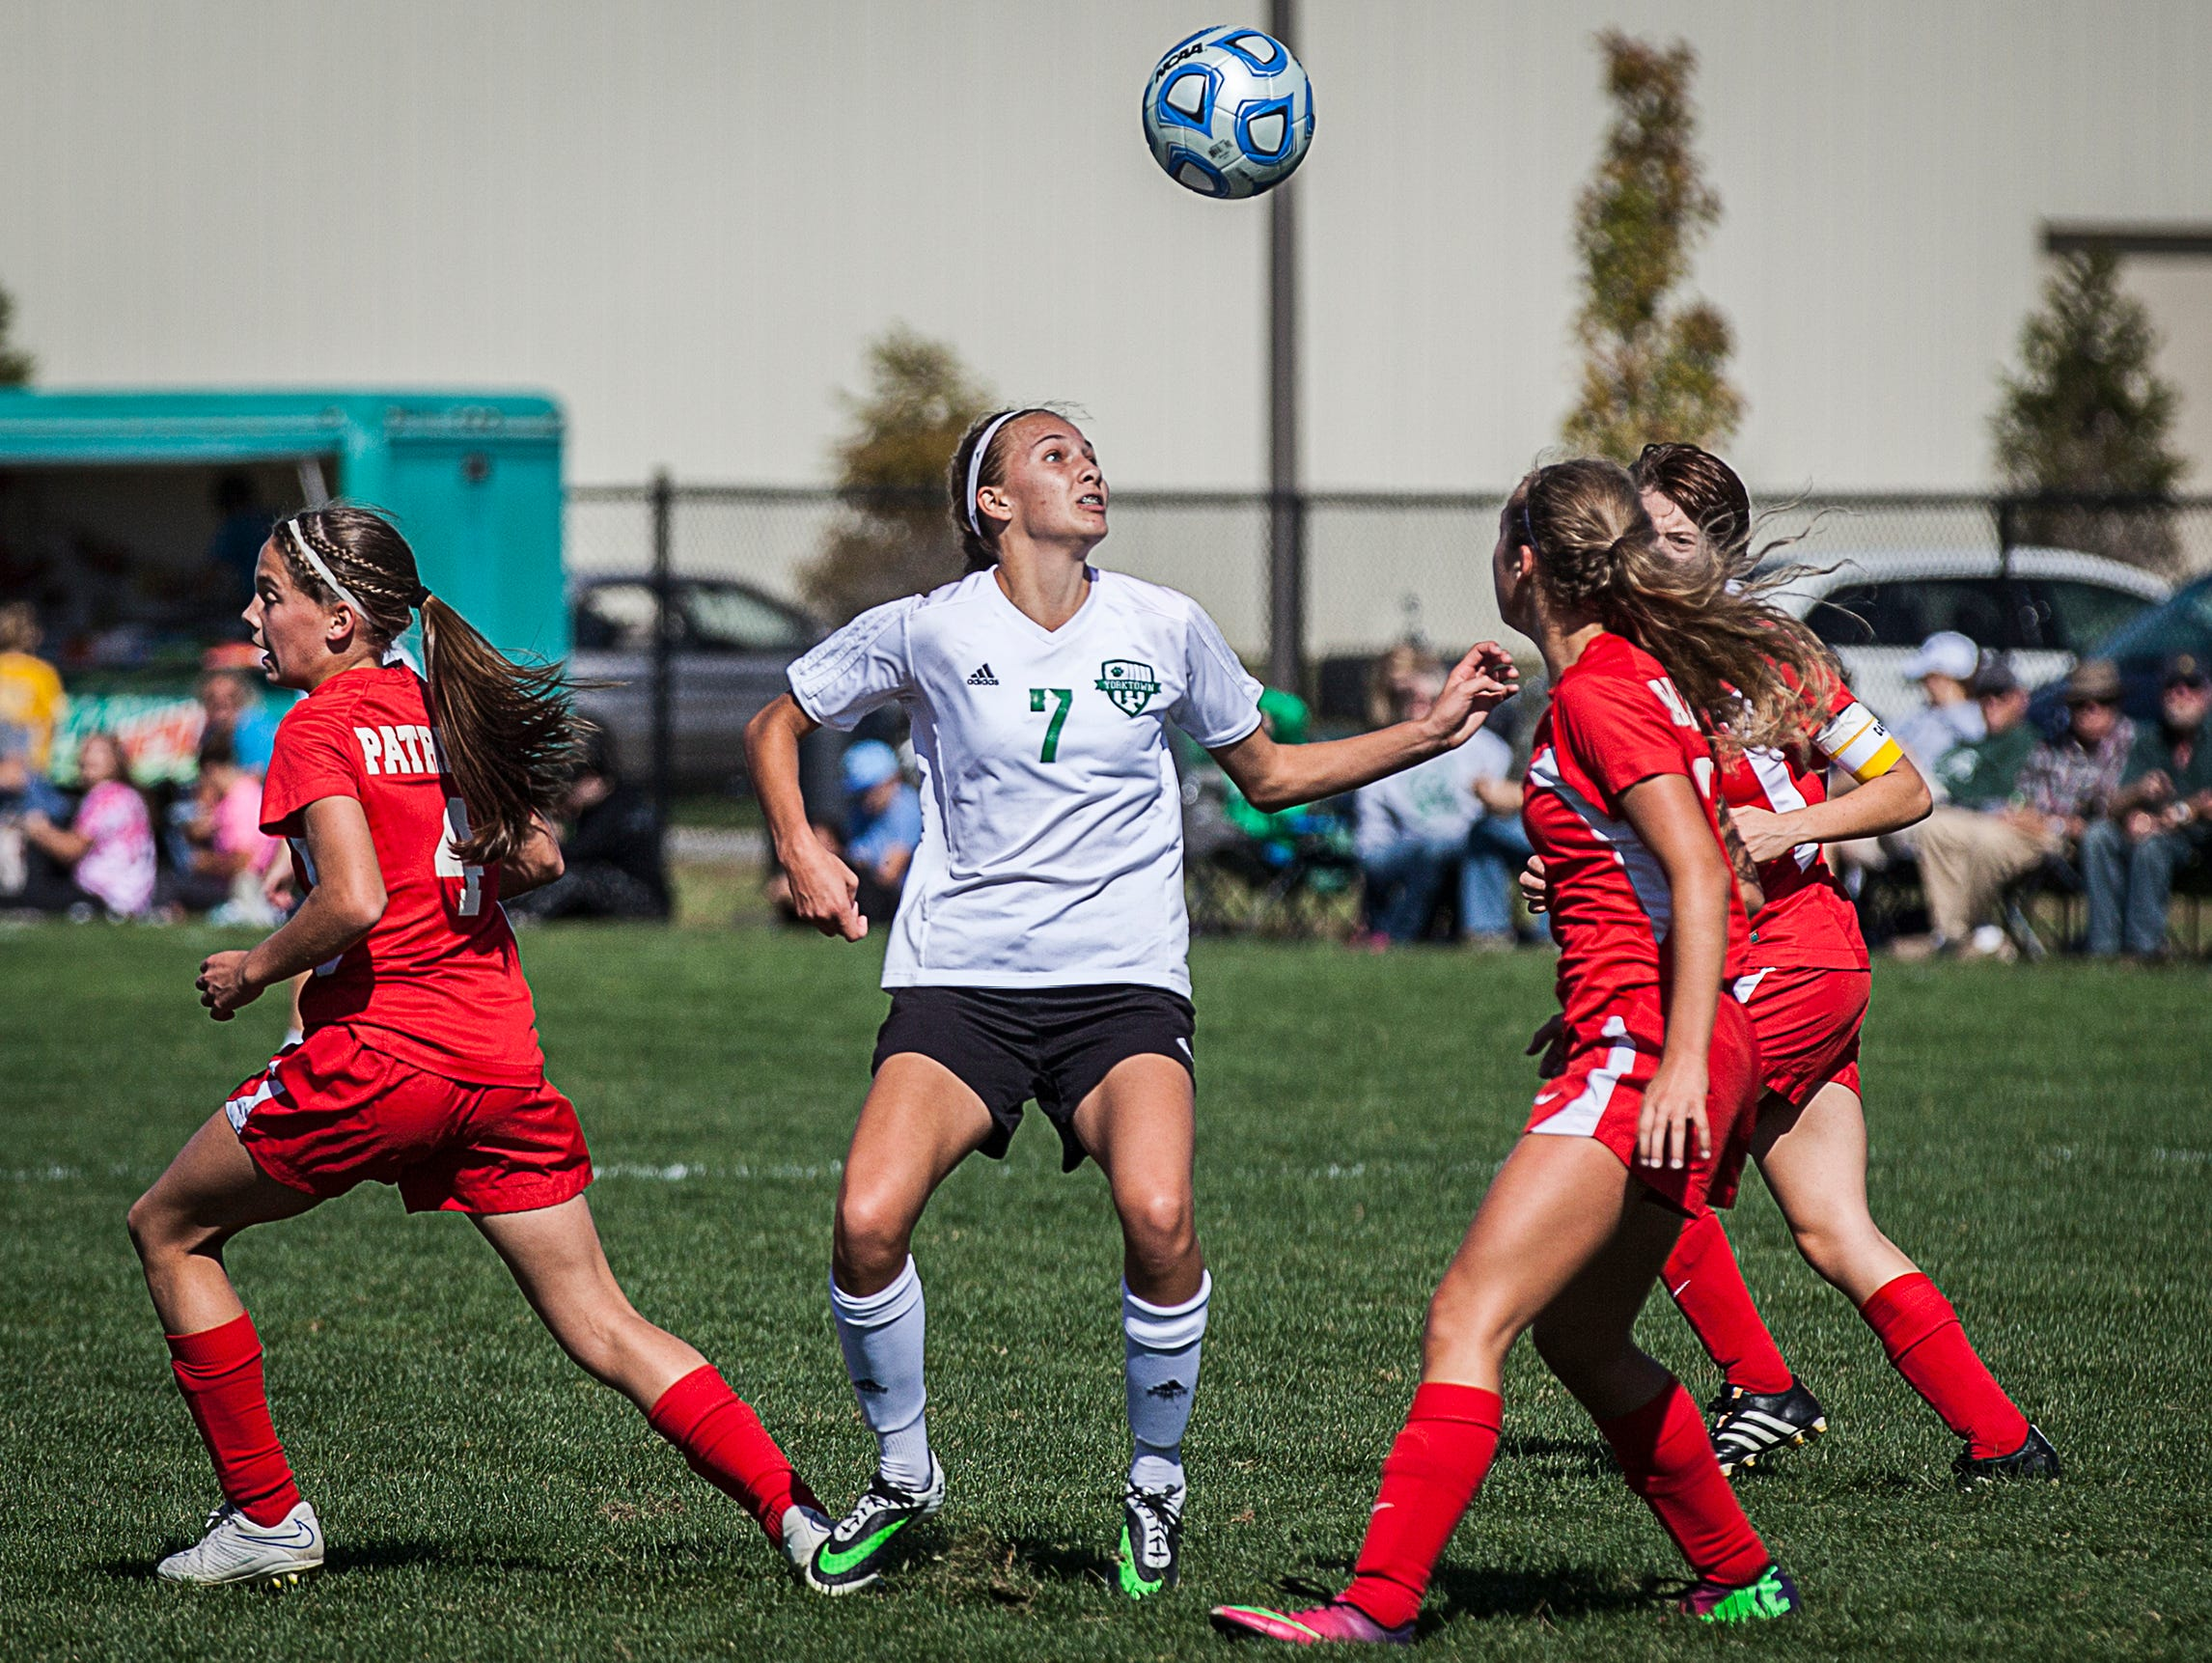 Yorktown's Hannah Rapp fights for possession against Jay County's defense during their game at the Yorktown Sports Park on Saturday, Oct. 10, 2015.